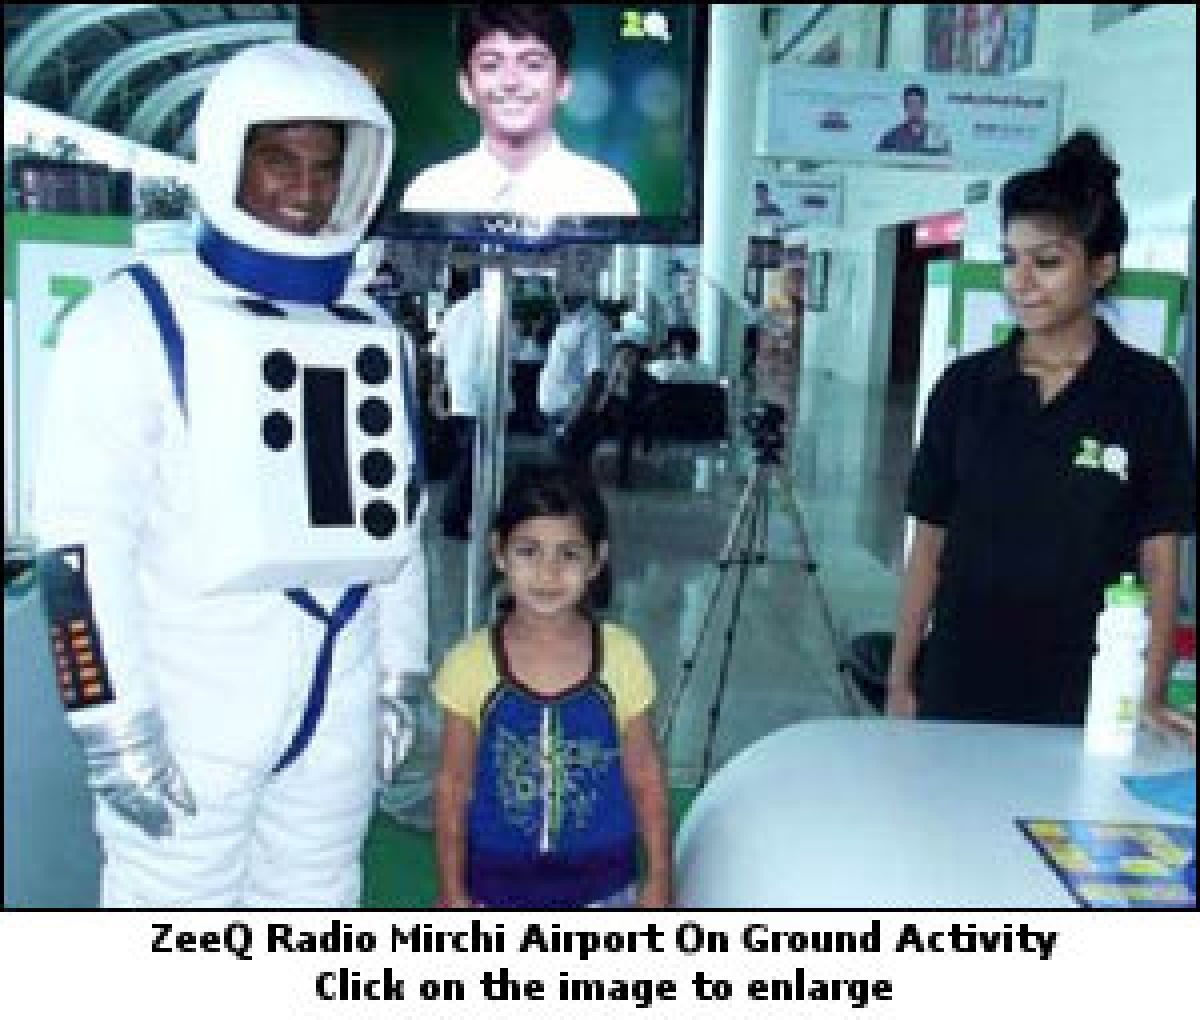 ZeeQ brings scientists and astronauts at Mumbai Airport